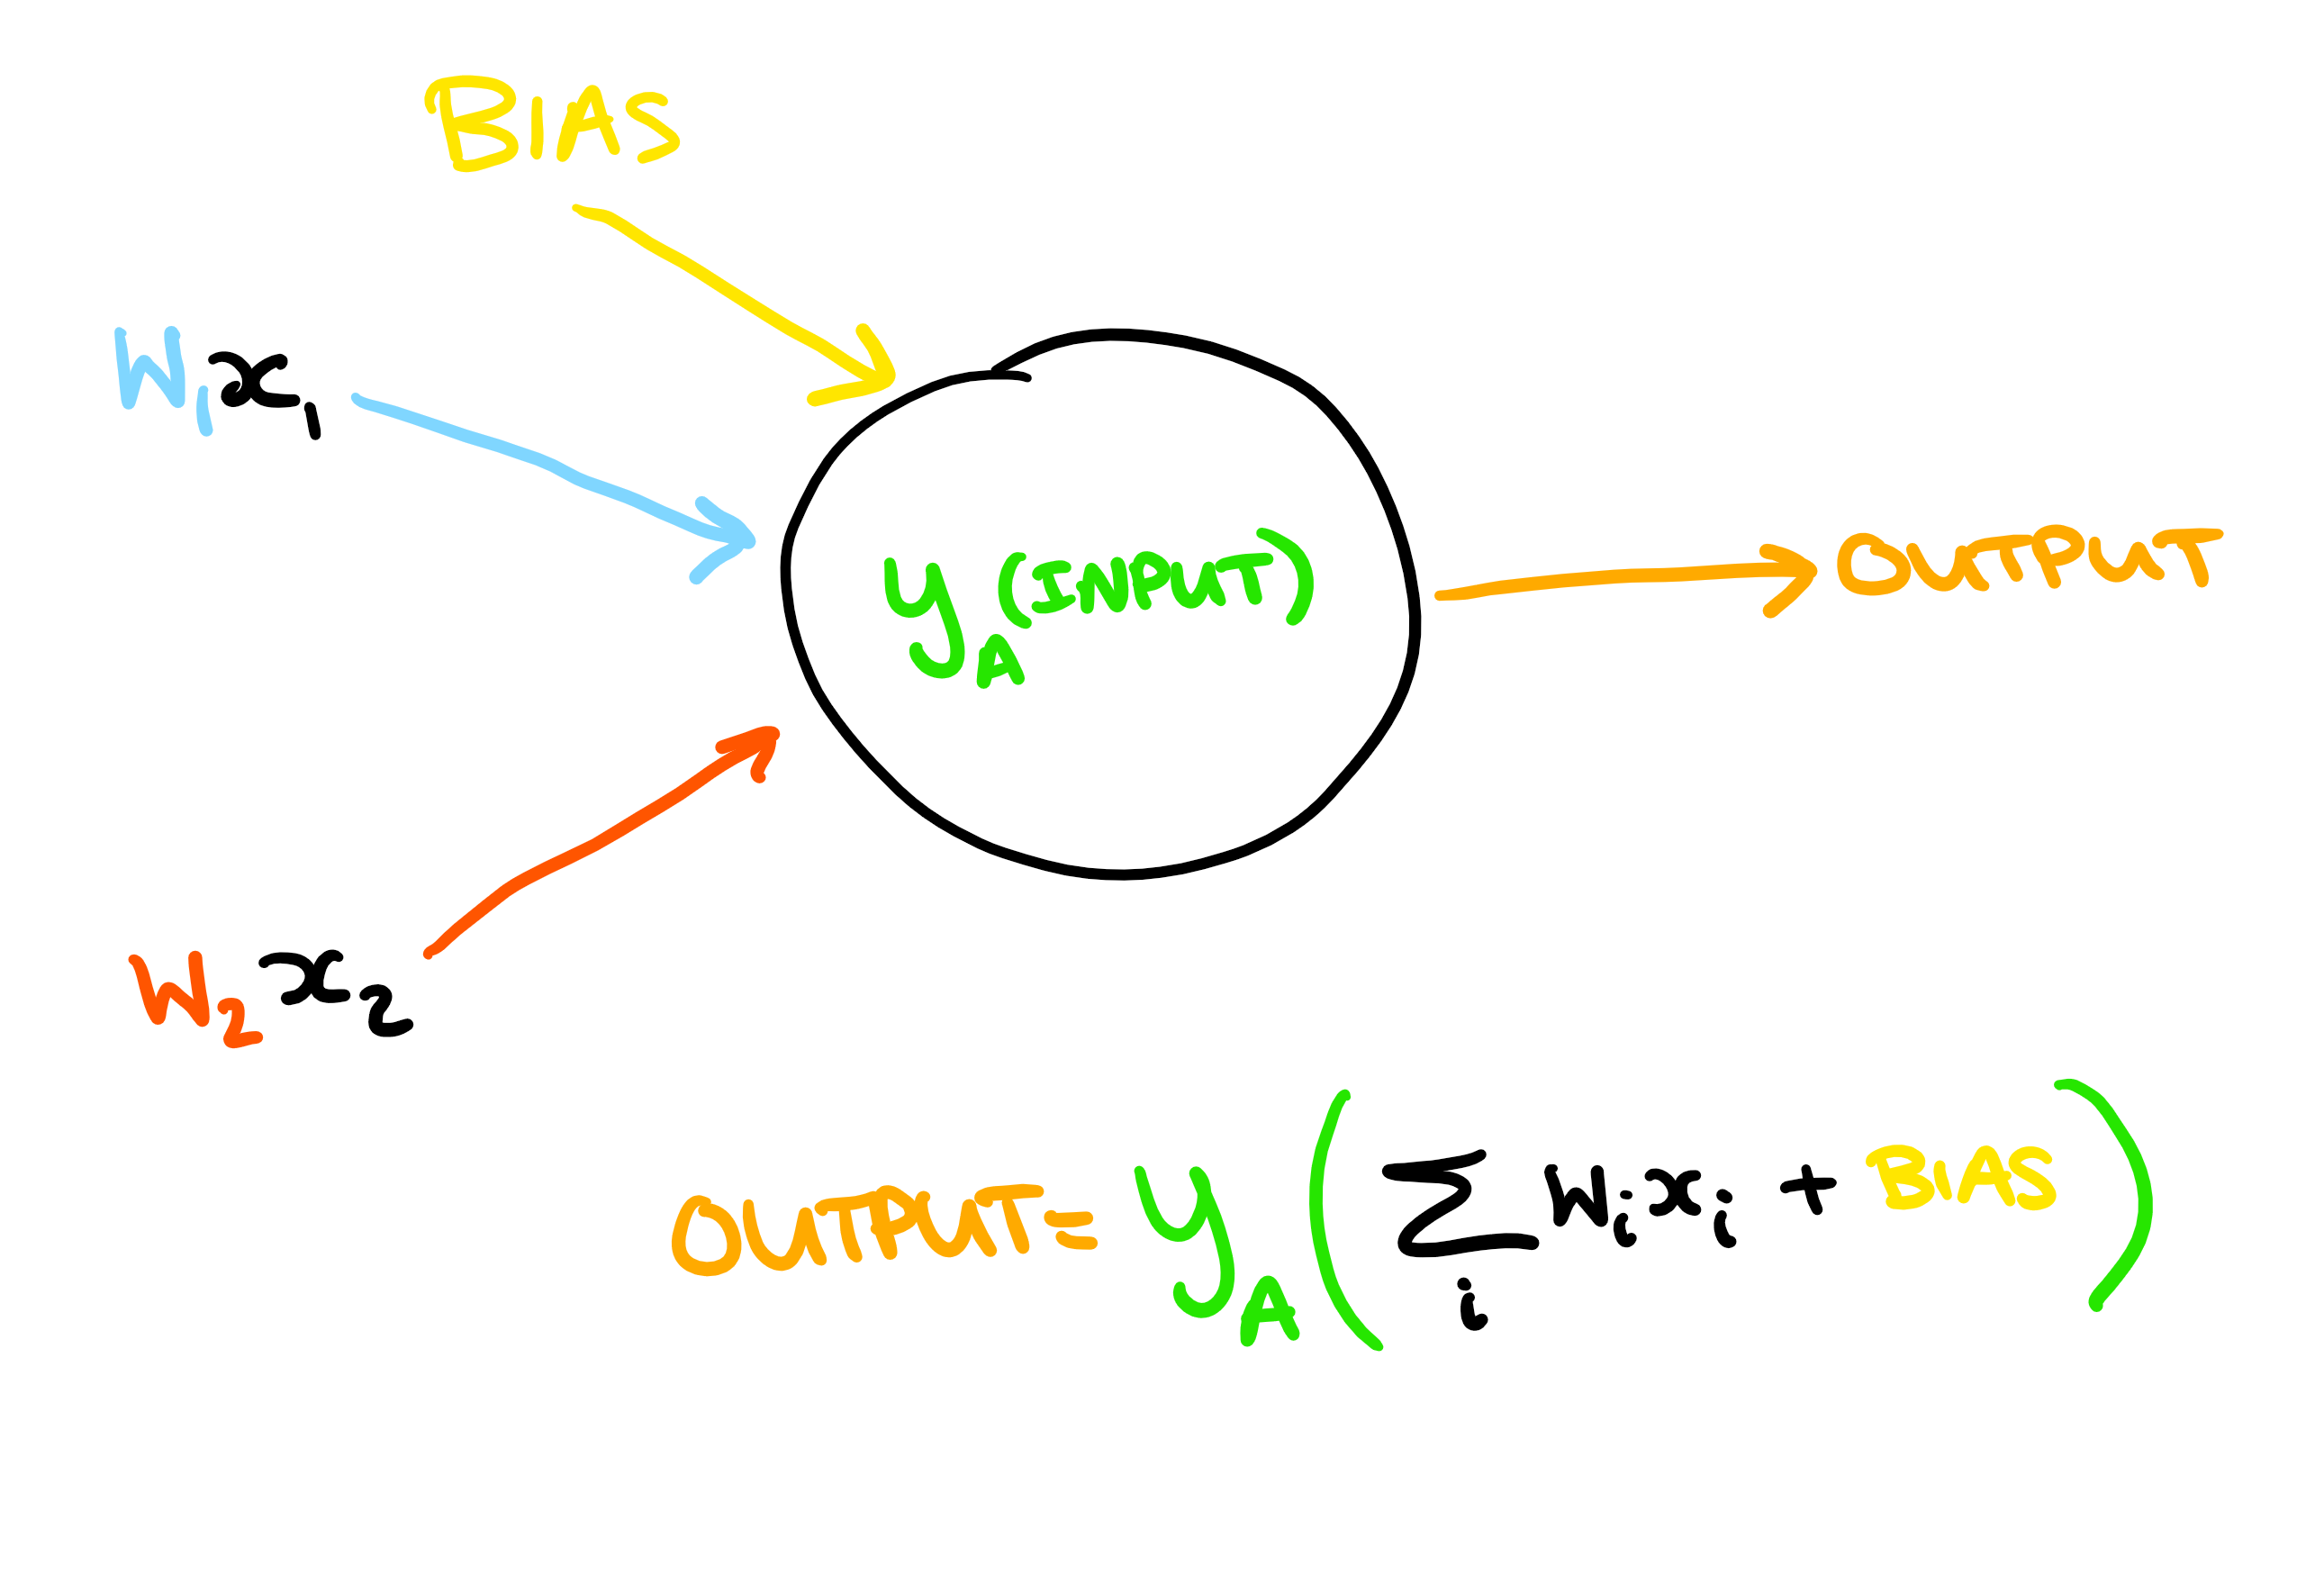 Diagram showing inputs and outputs of a neuron in an ML algorithm.